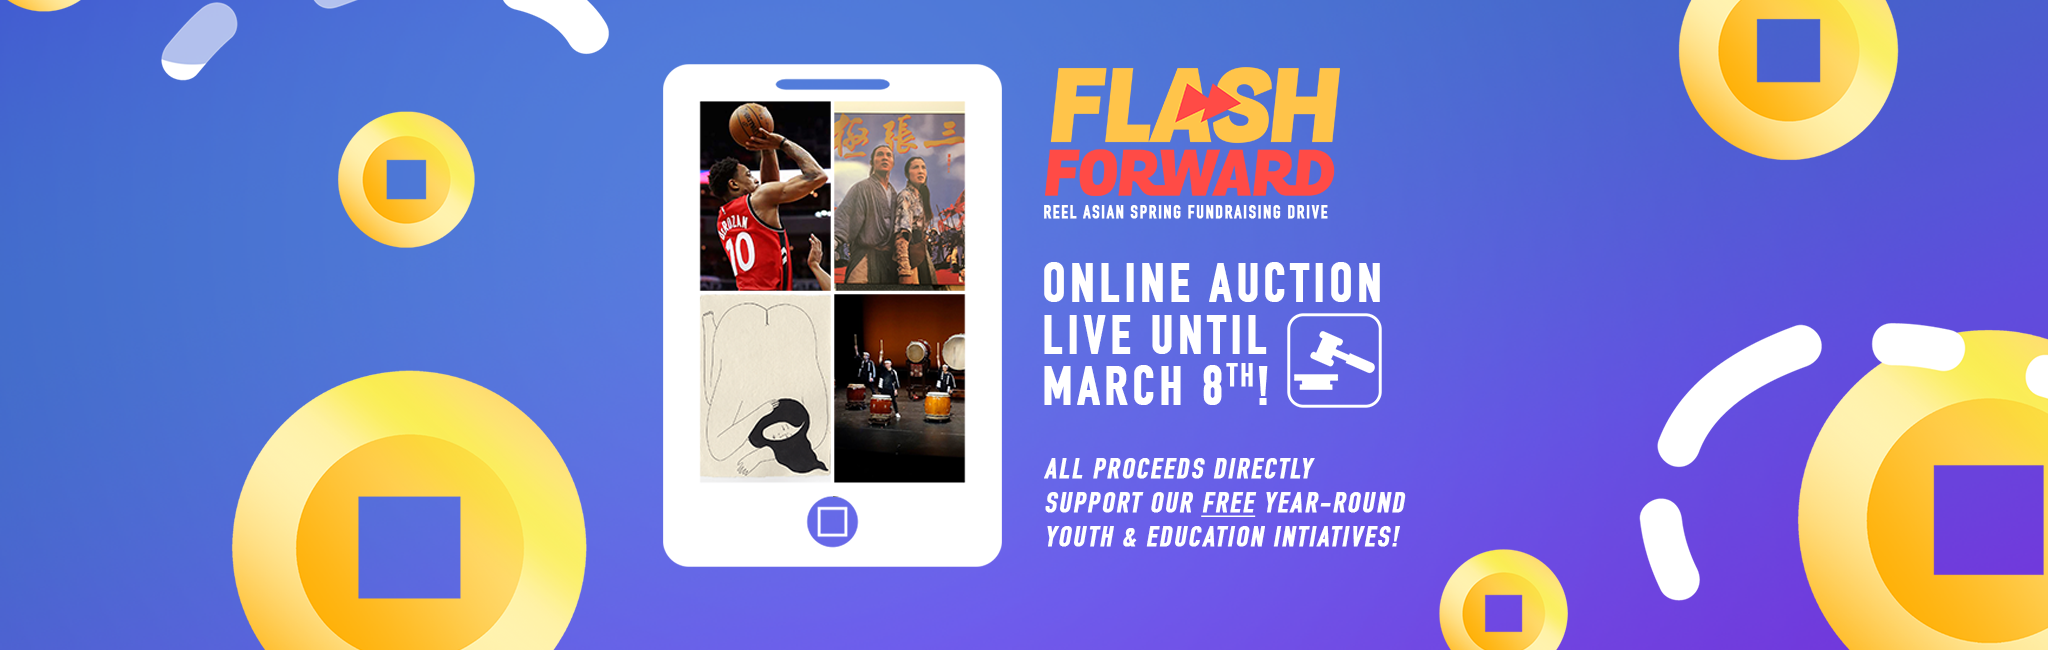 Our Flashforward Online Auction is now LIVE!